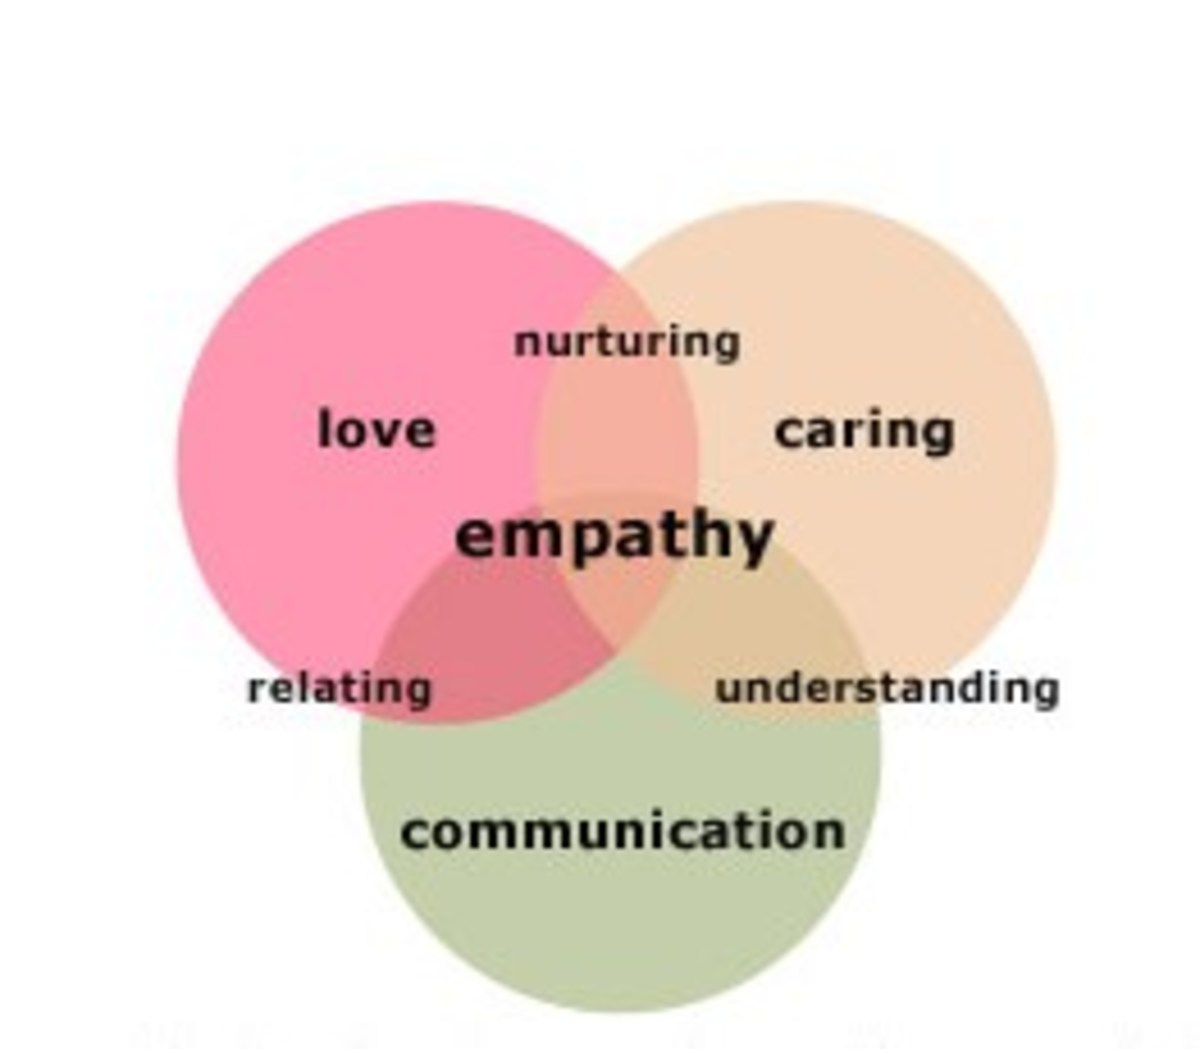 How To Improve Empathy by Reading